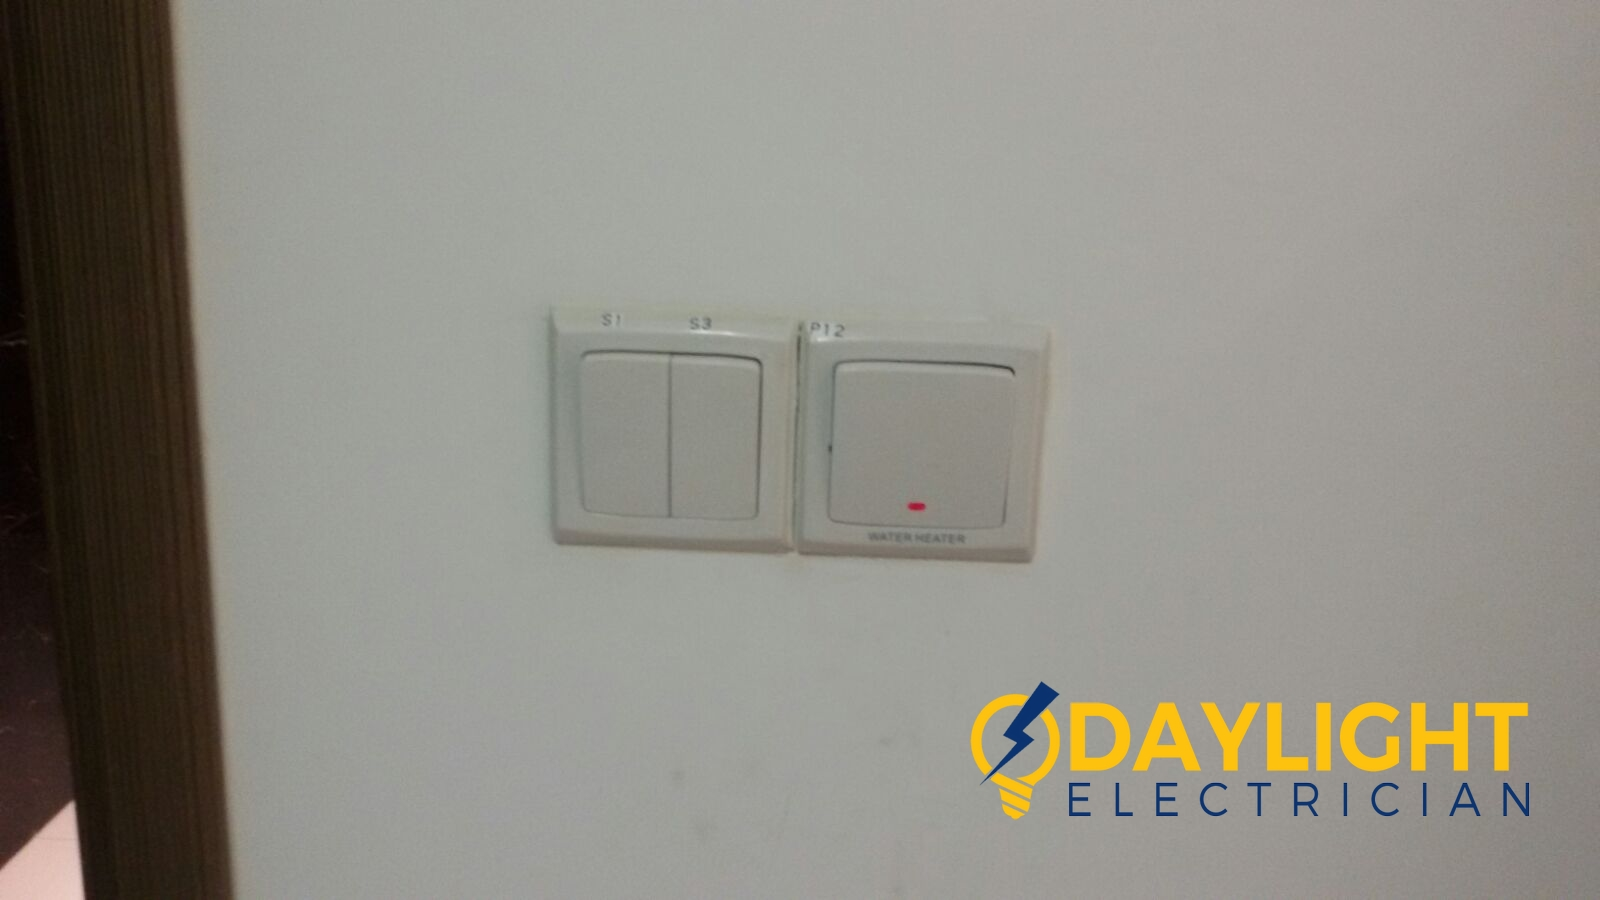 Replace-water-heater-switch-electrician-singapore-condo-tampines-flora-drive-2